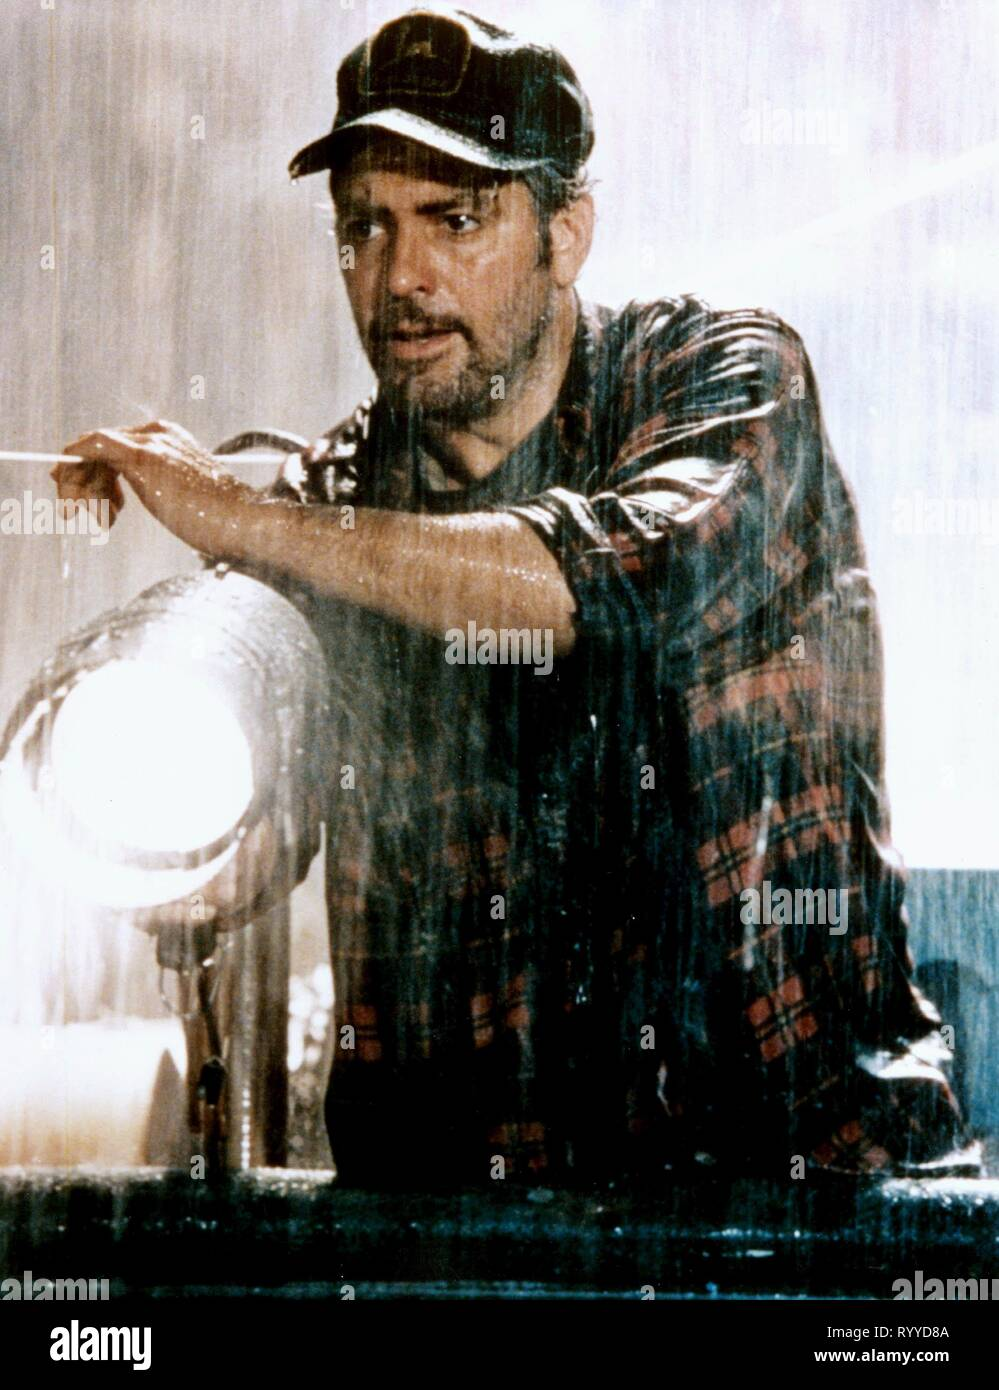 George Clooney The Perfect Storm 2000 Stock Photo Alamy